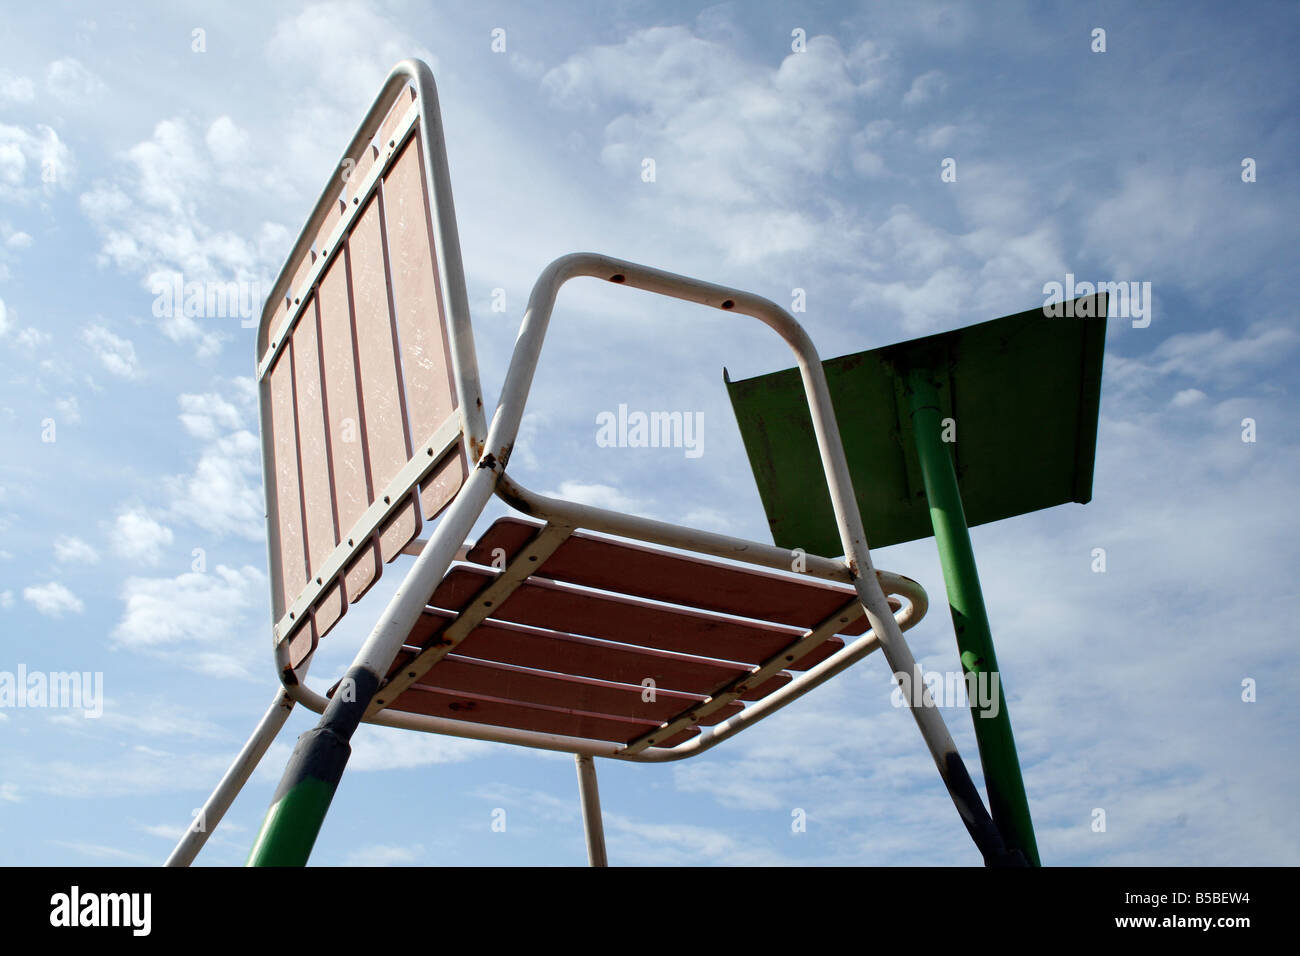 folding umpire chair elegant design tennis s stock photos on a court image